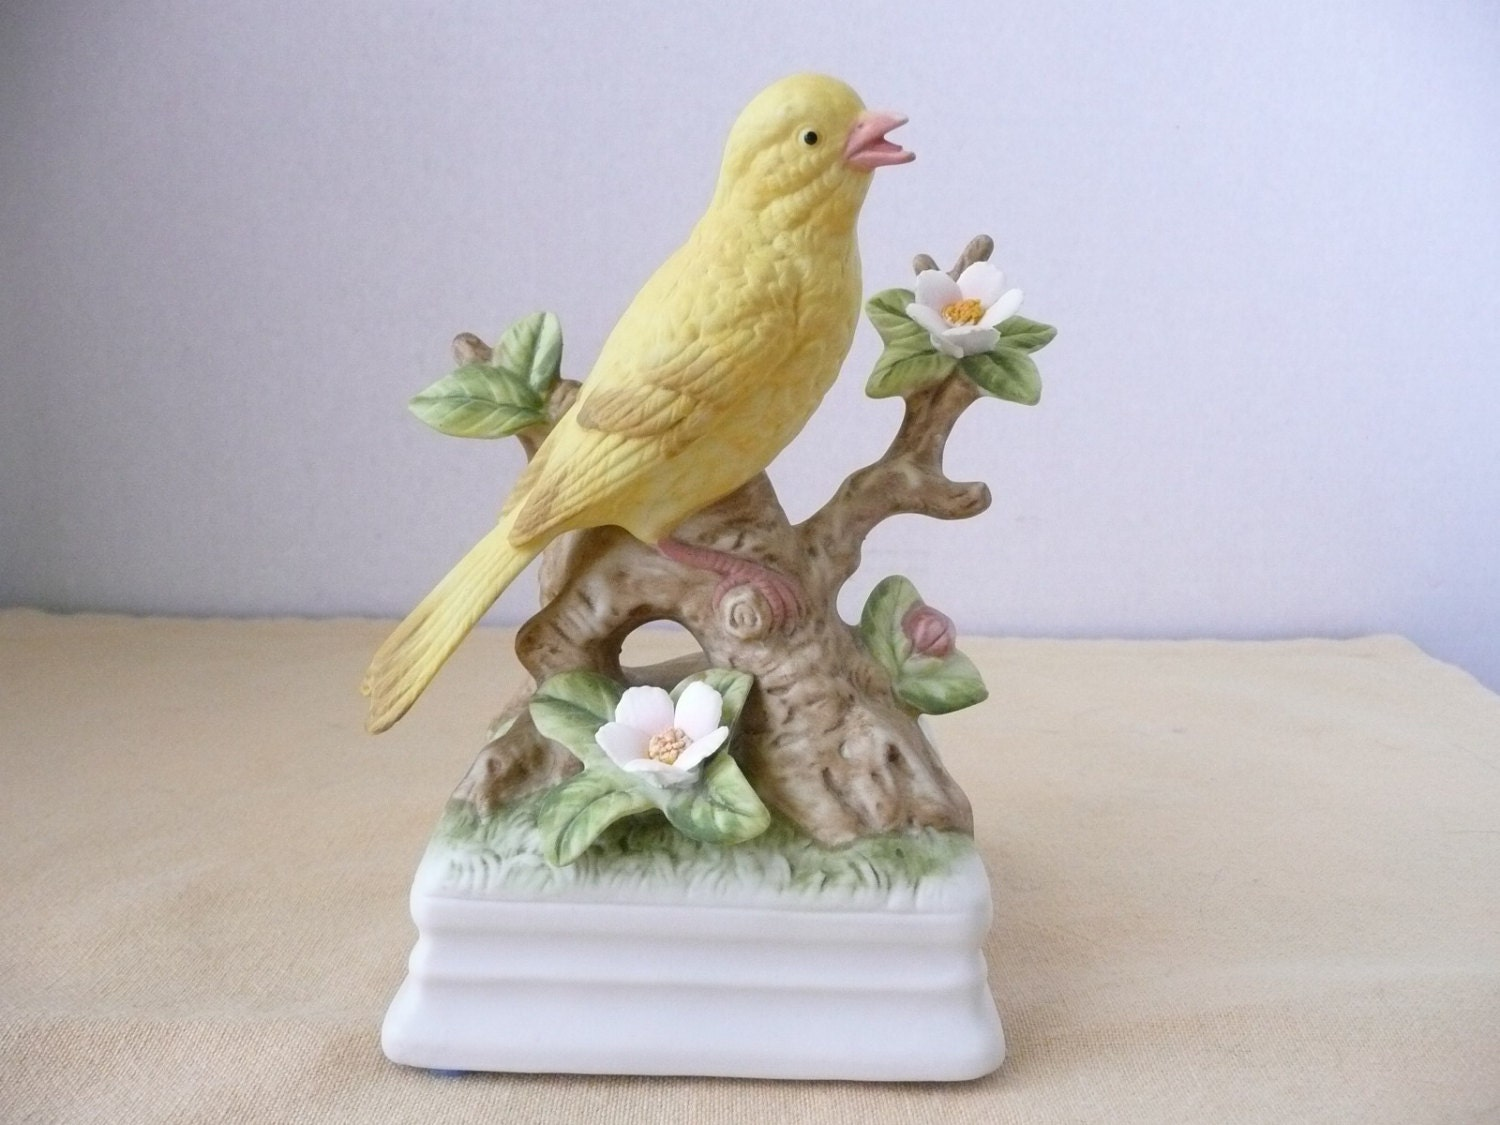 Gorham Musical Porcelain Bird Figurine Music Box Porcelain